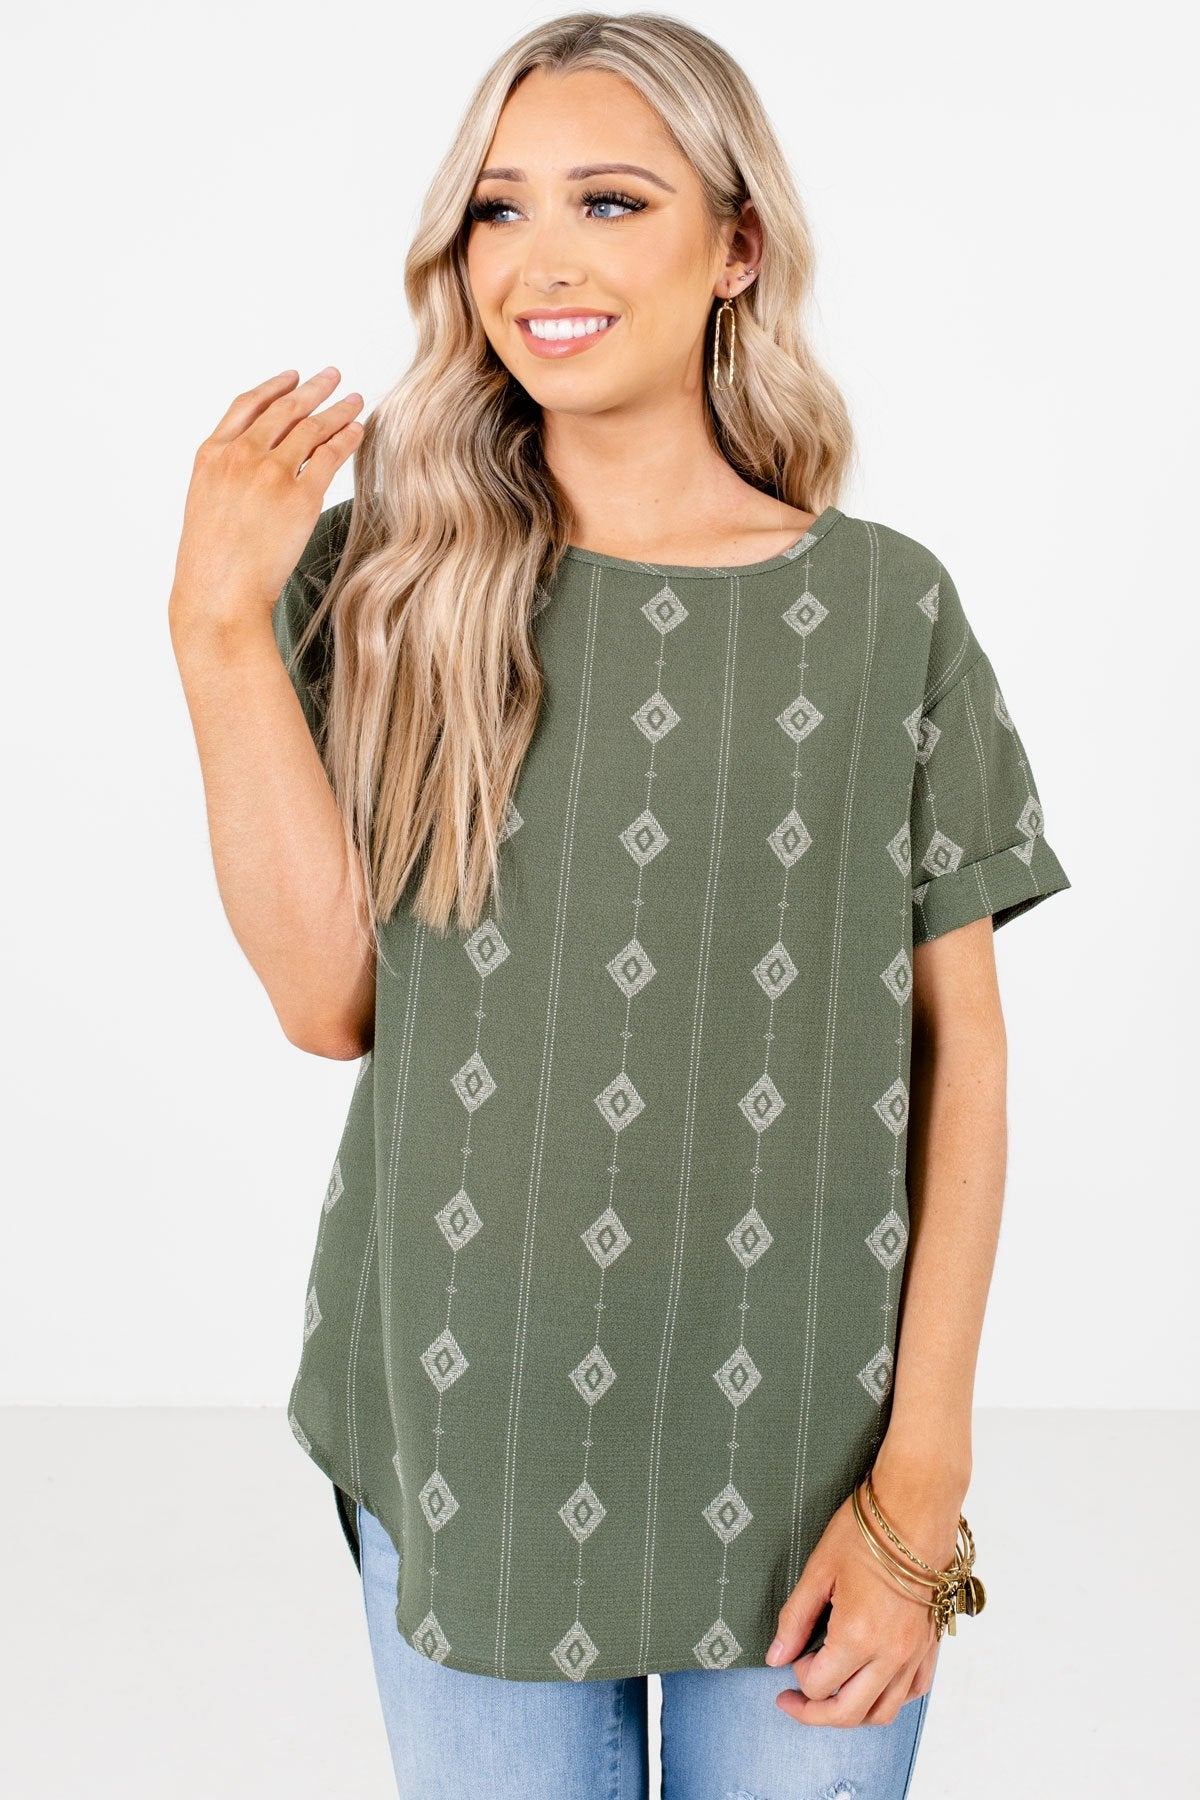 Sage Green Diamond Patterned Boutique Blouses for Women